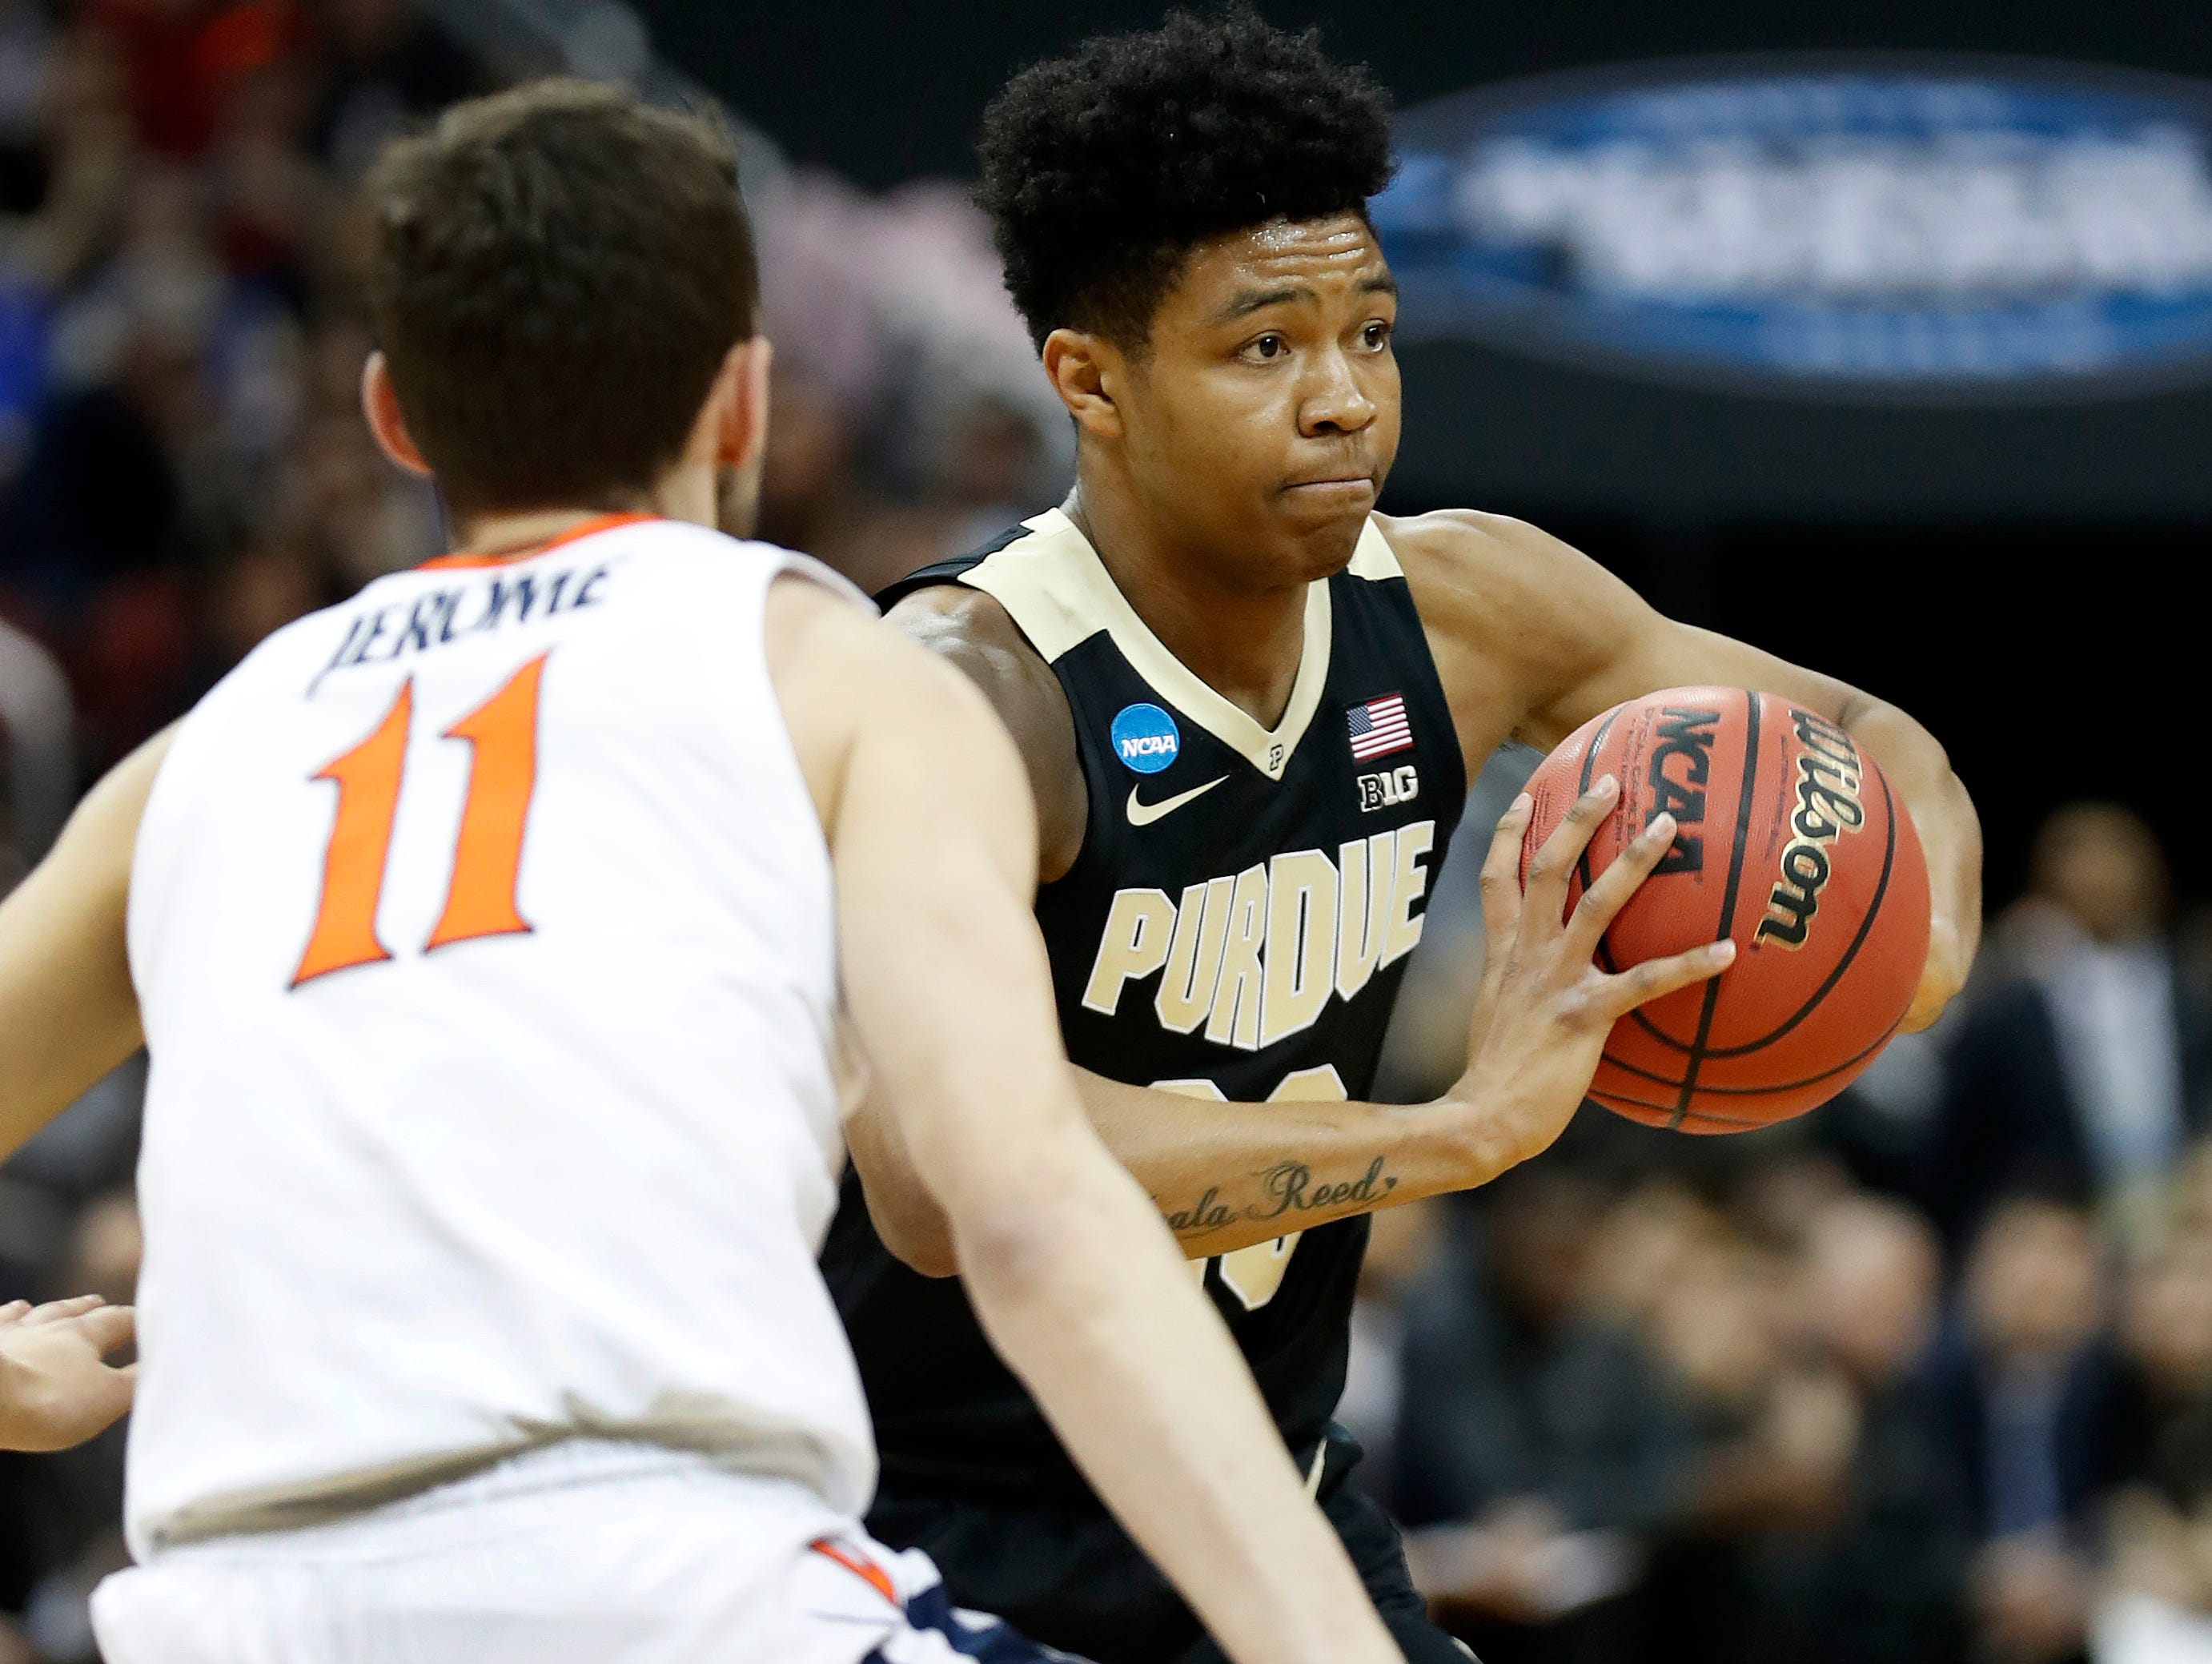 "Purdue Boilermakers guard Nojel Eastern (20) passes the ball by Virginia Cavaliers guard Ty Jerome (11) in the first half of their NCAA Division I Basketball Championship ""Elite 8"" basketball game at the KFC Yum! Center in Louisville, KY., on Saturday, Mar 30, 2019."